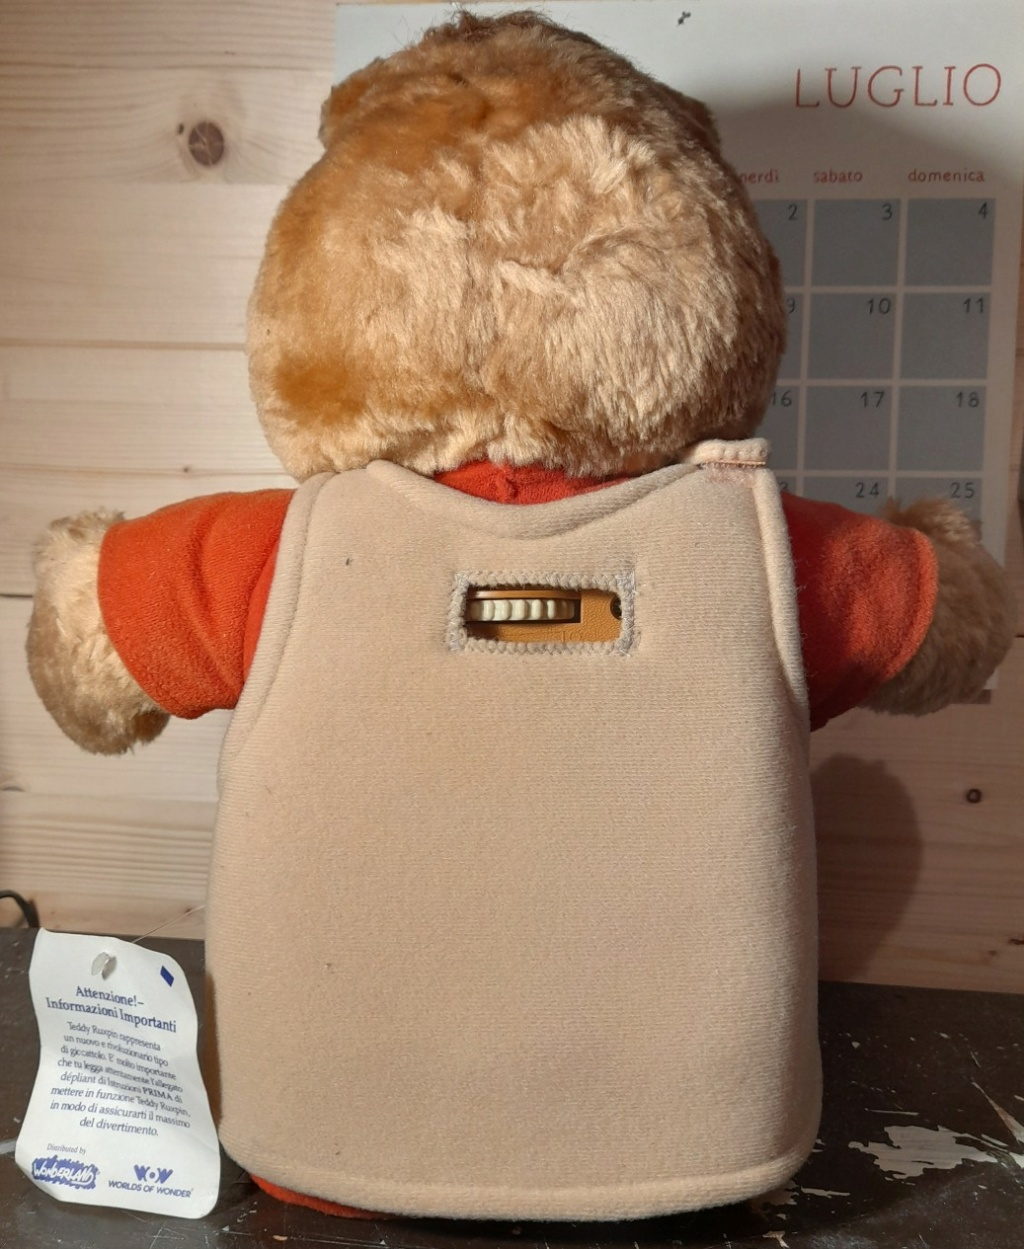 TEDDY RUXPIN ANNO 1985 WOW WORLDS OF WONDERS 20210711